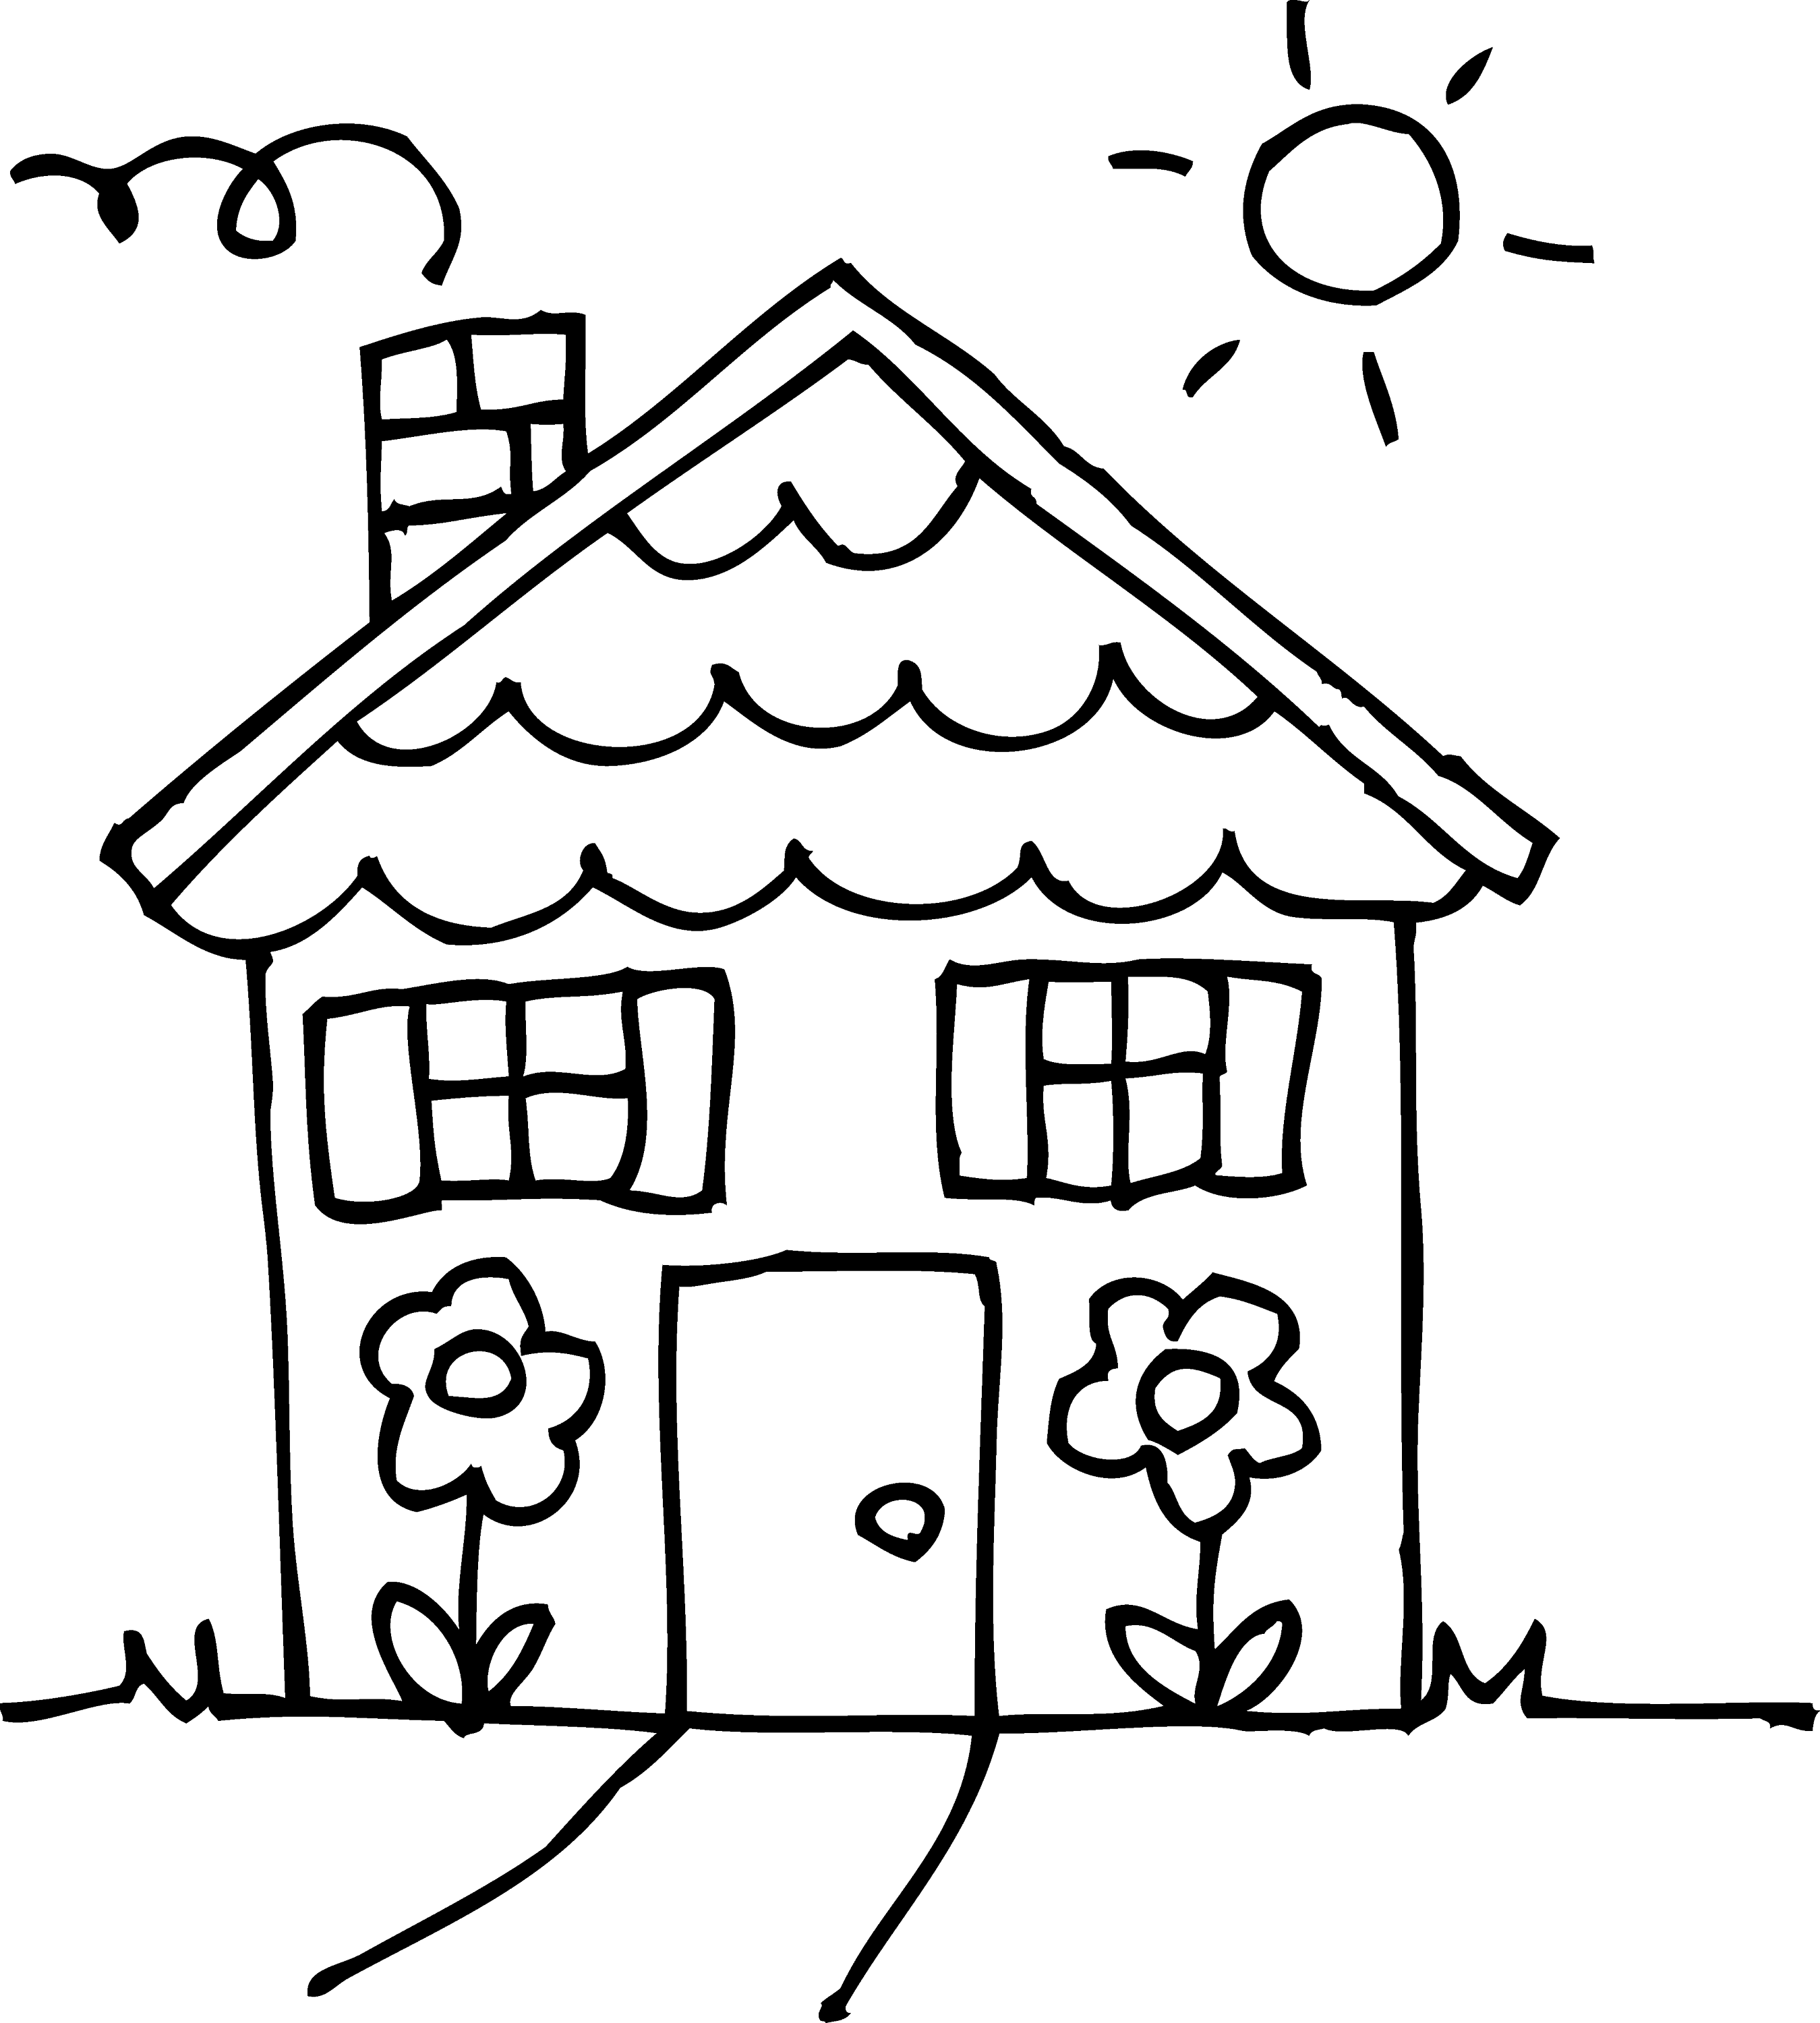 house for coloring free printable haunted house coloring pages for kids for coloring house